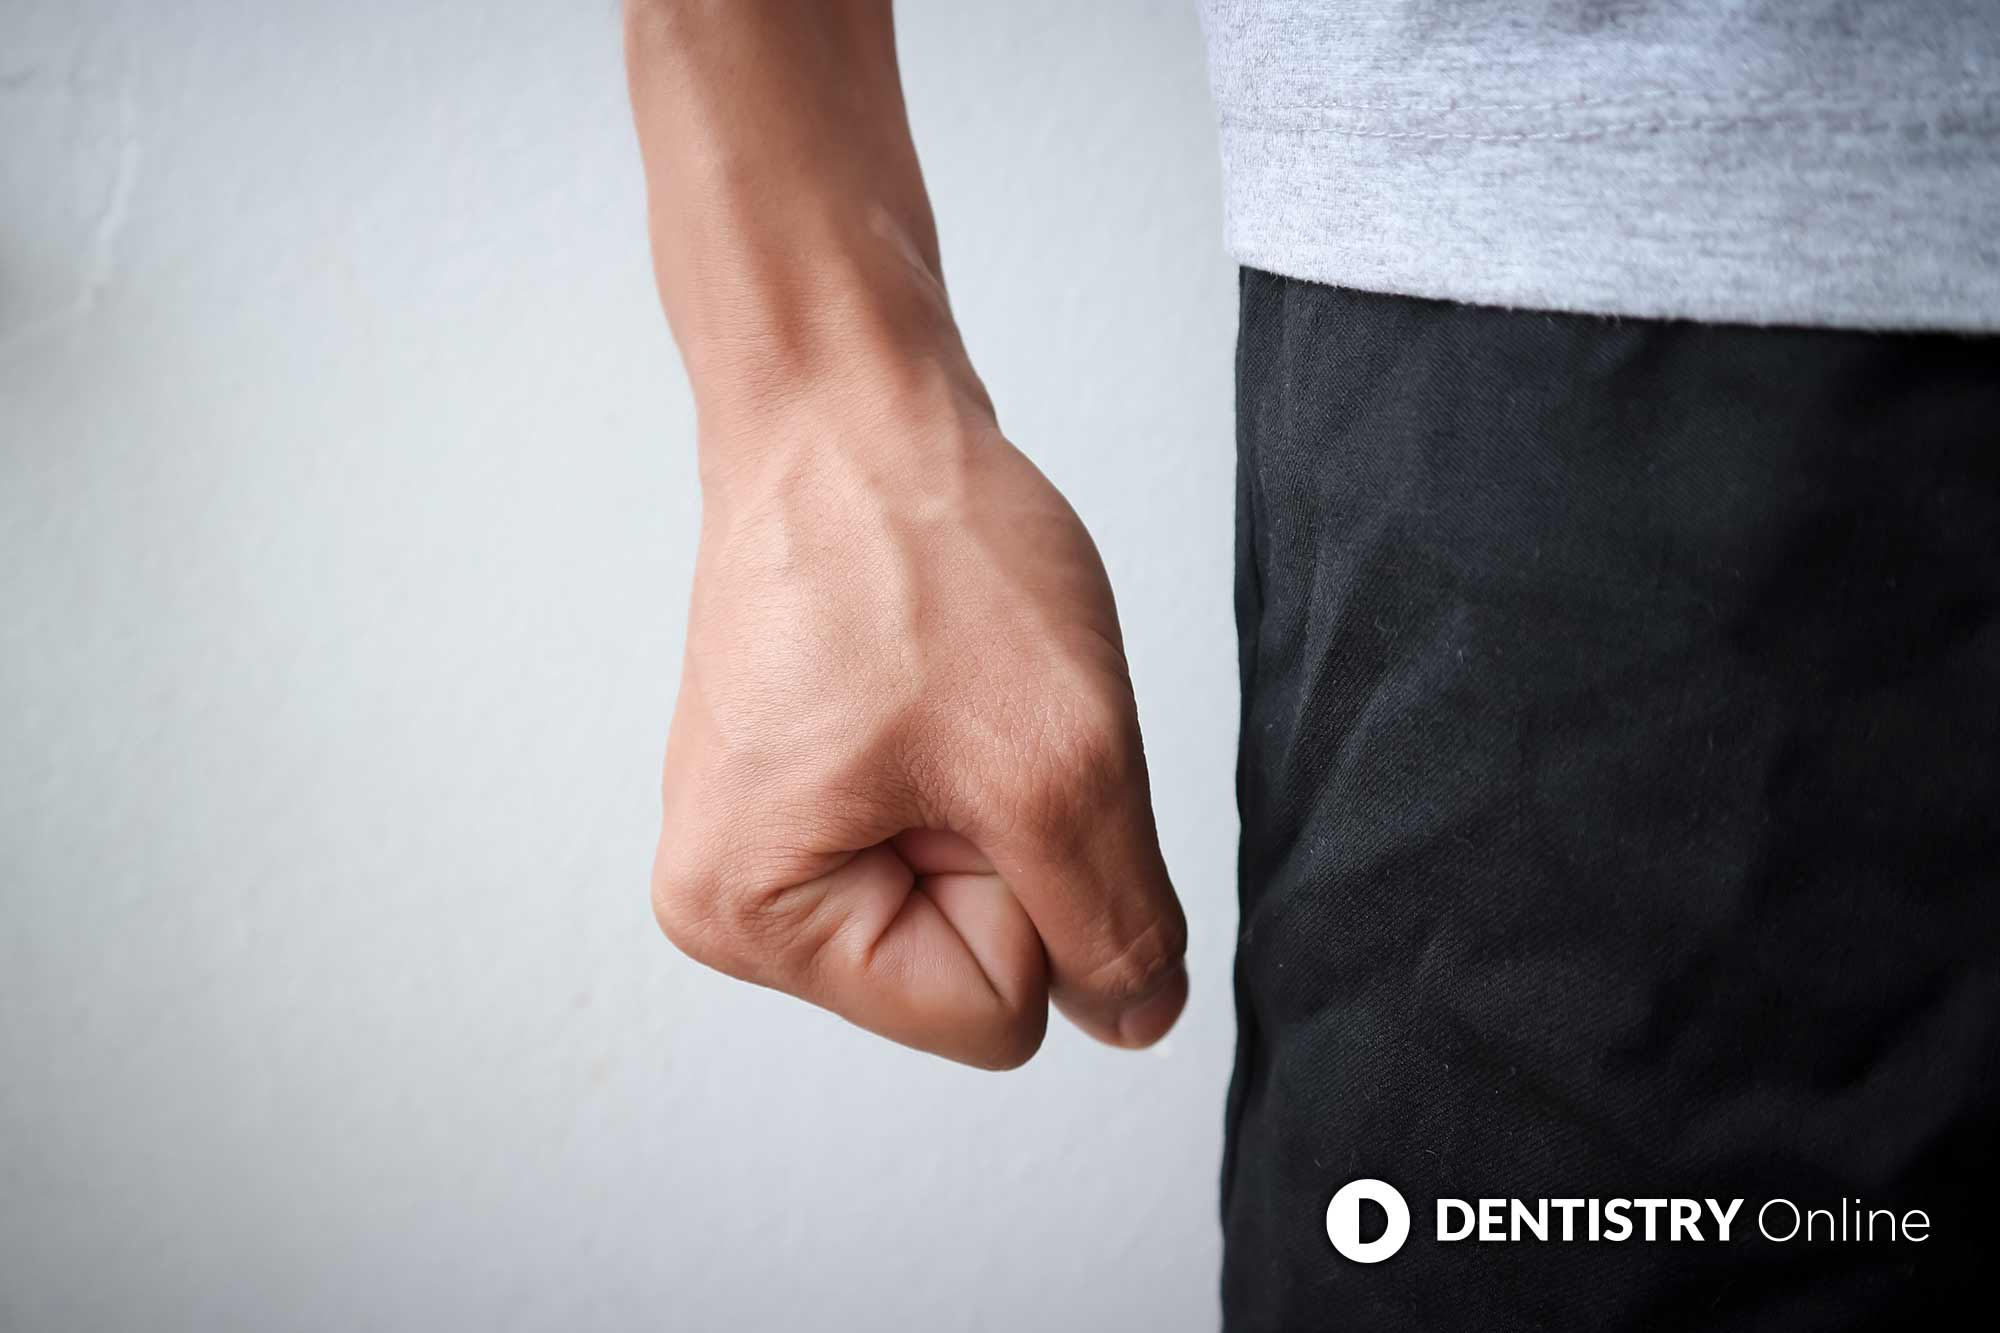 Around half of dentists experienced aggression from their patients in the last year, research reveals